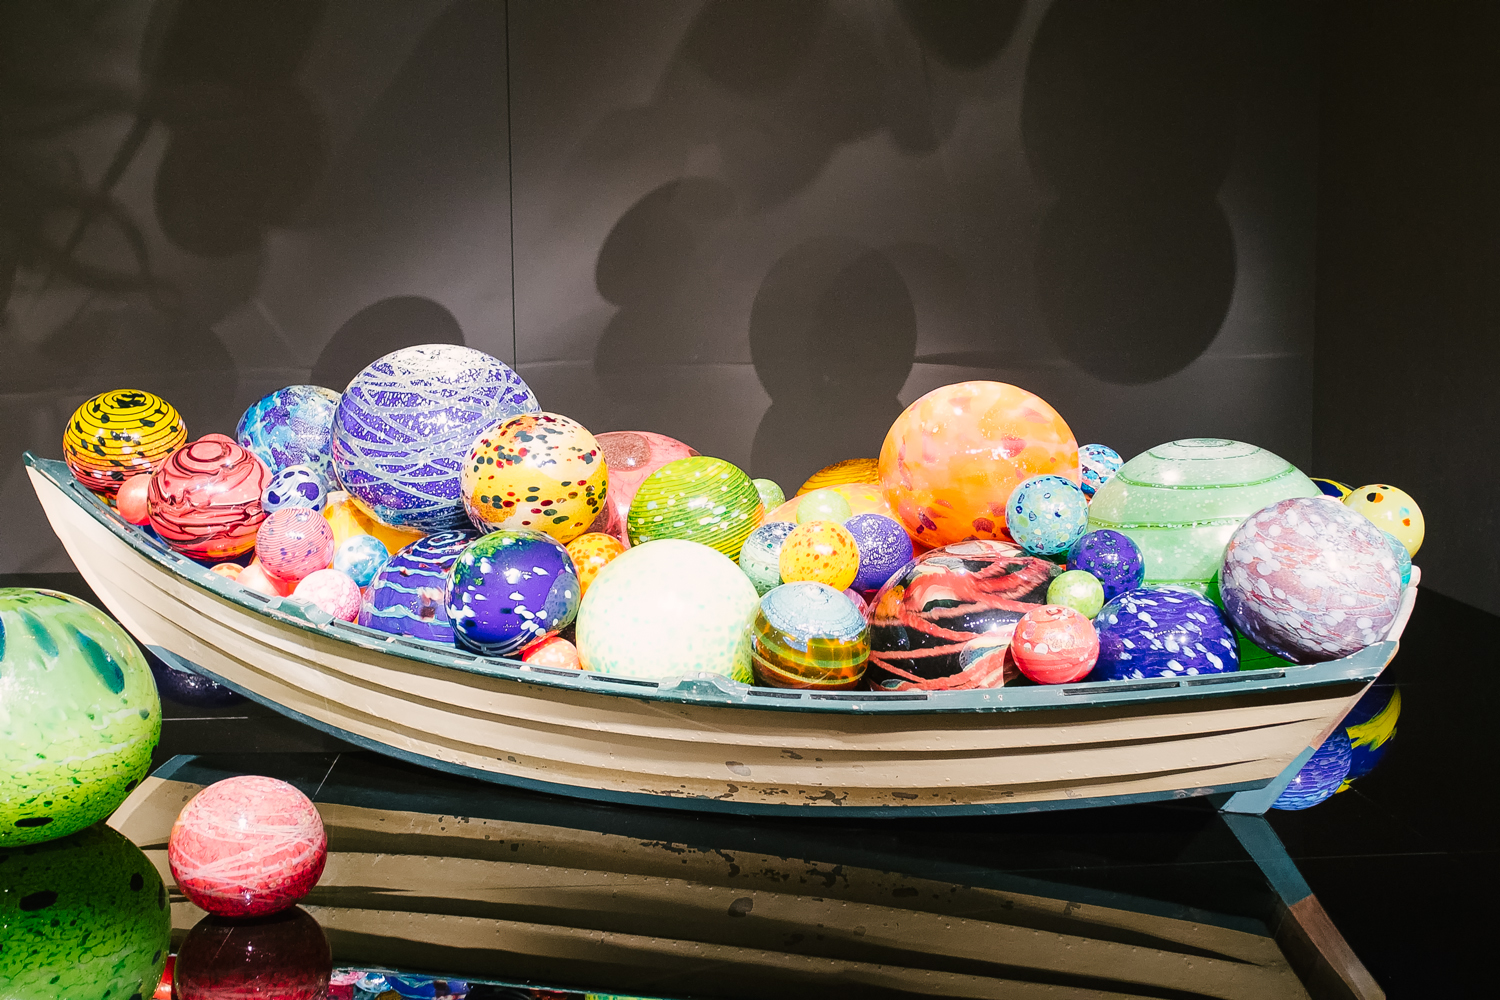 The Chihuly Exhibition